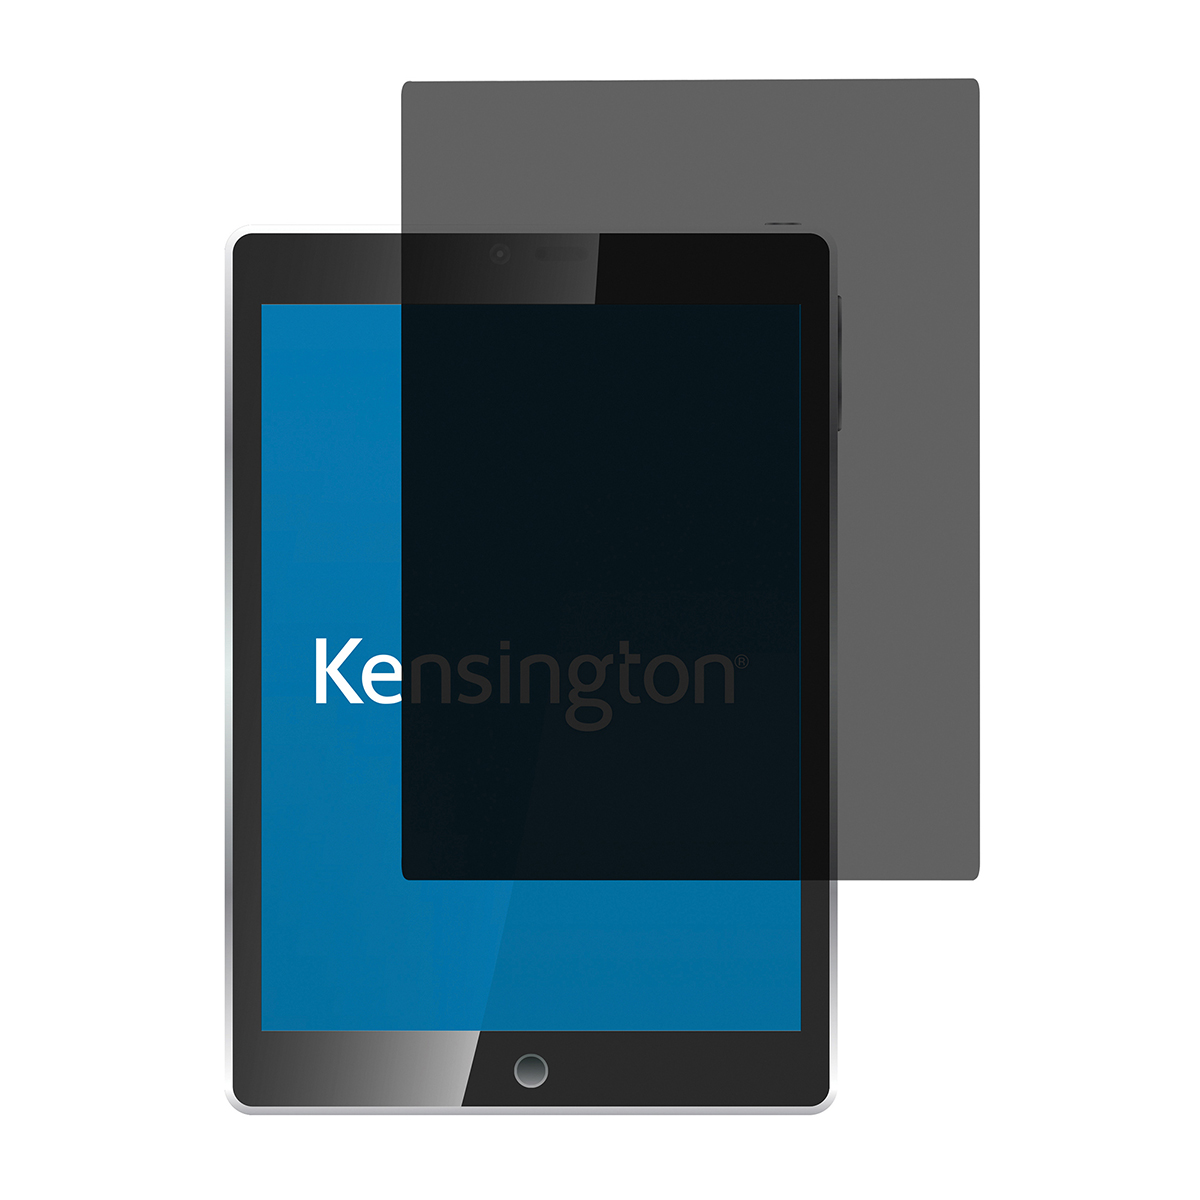 Kensington 626401 Privacy Filter 2 Way Removable for iPad Pro 10.5 Inch Landscape